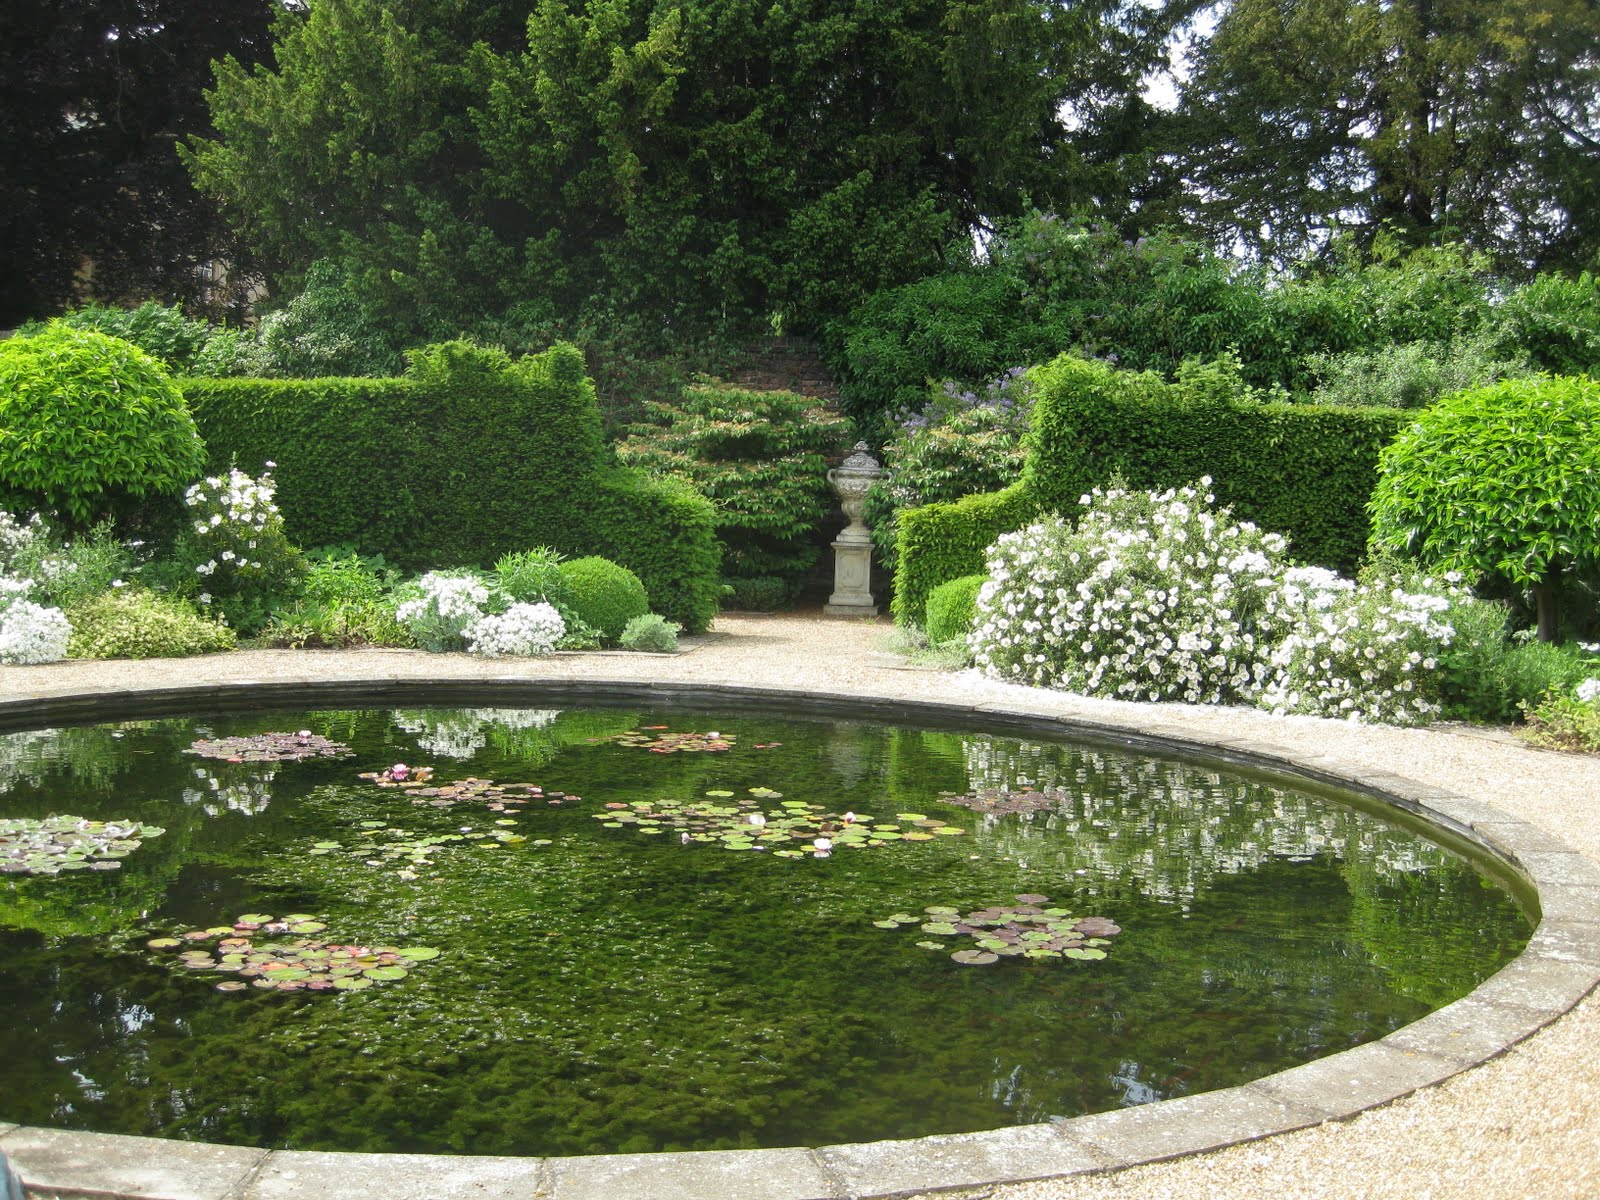 Ham photos rear garden at ormeley lodge - The Summer Season Of Prying Into Private Gardens Continues Apace With Three More In Richmond All With Interesting Stories